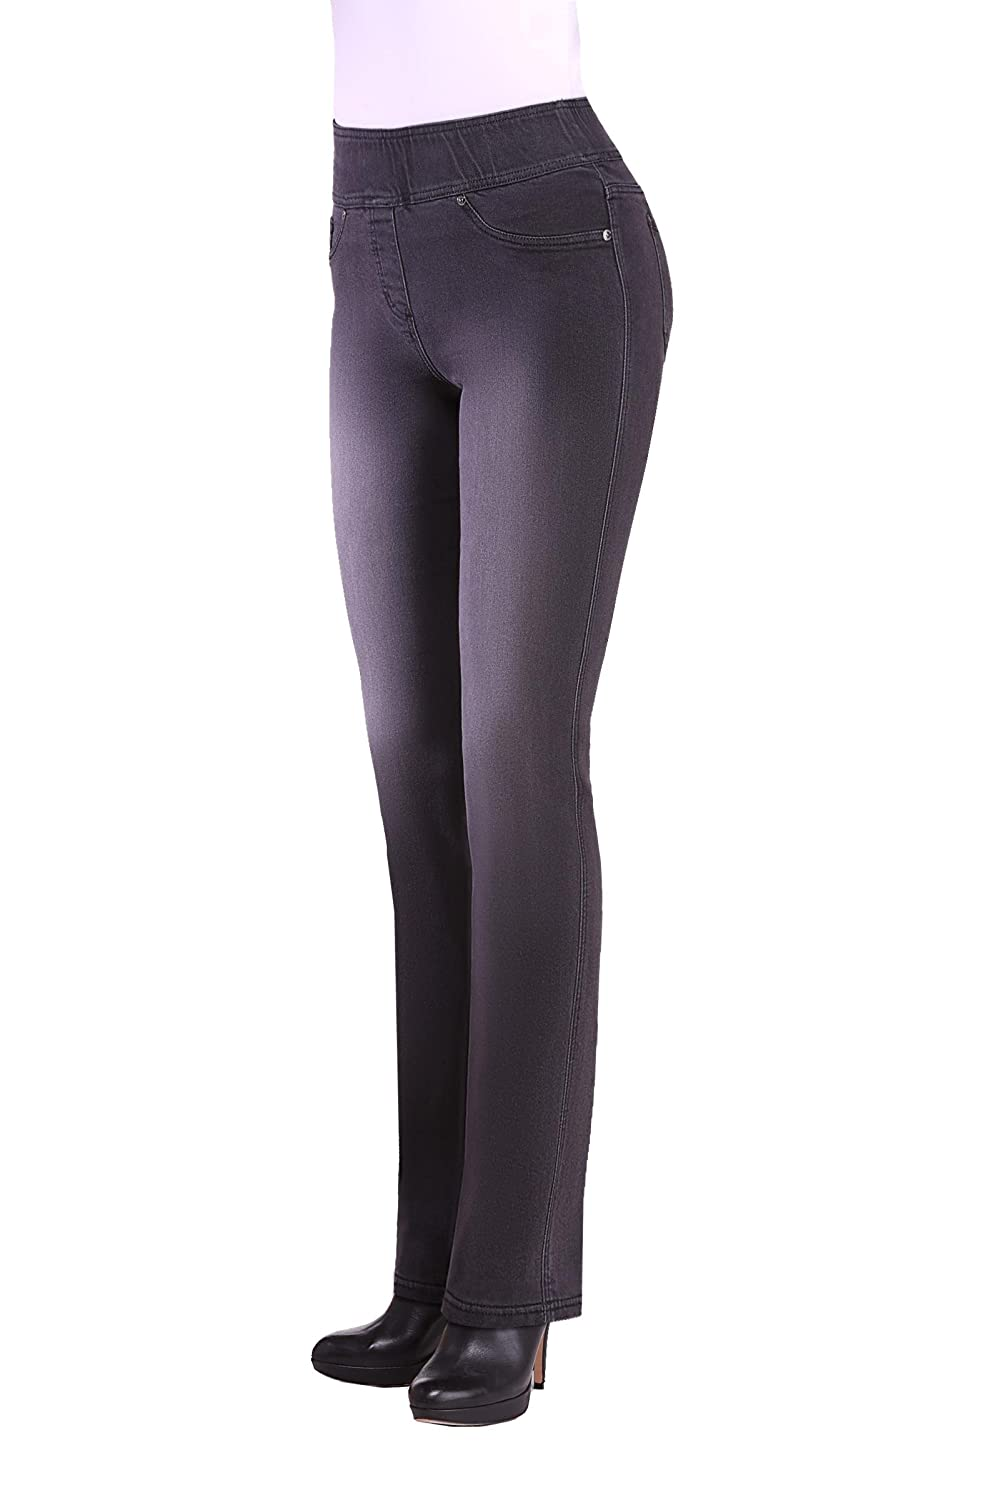 NYGÅ RD SLIMS Nygard Women's Regular Slims INDIGO Skinny GE14E116